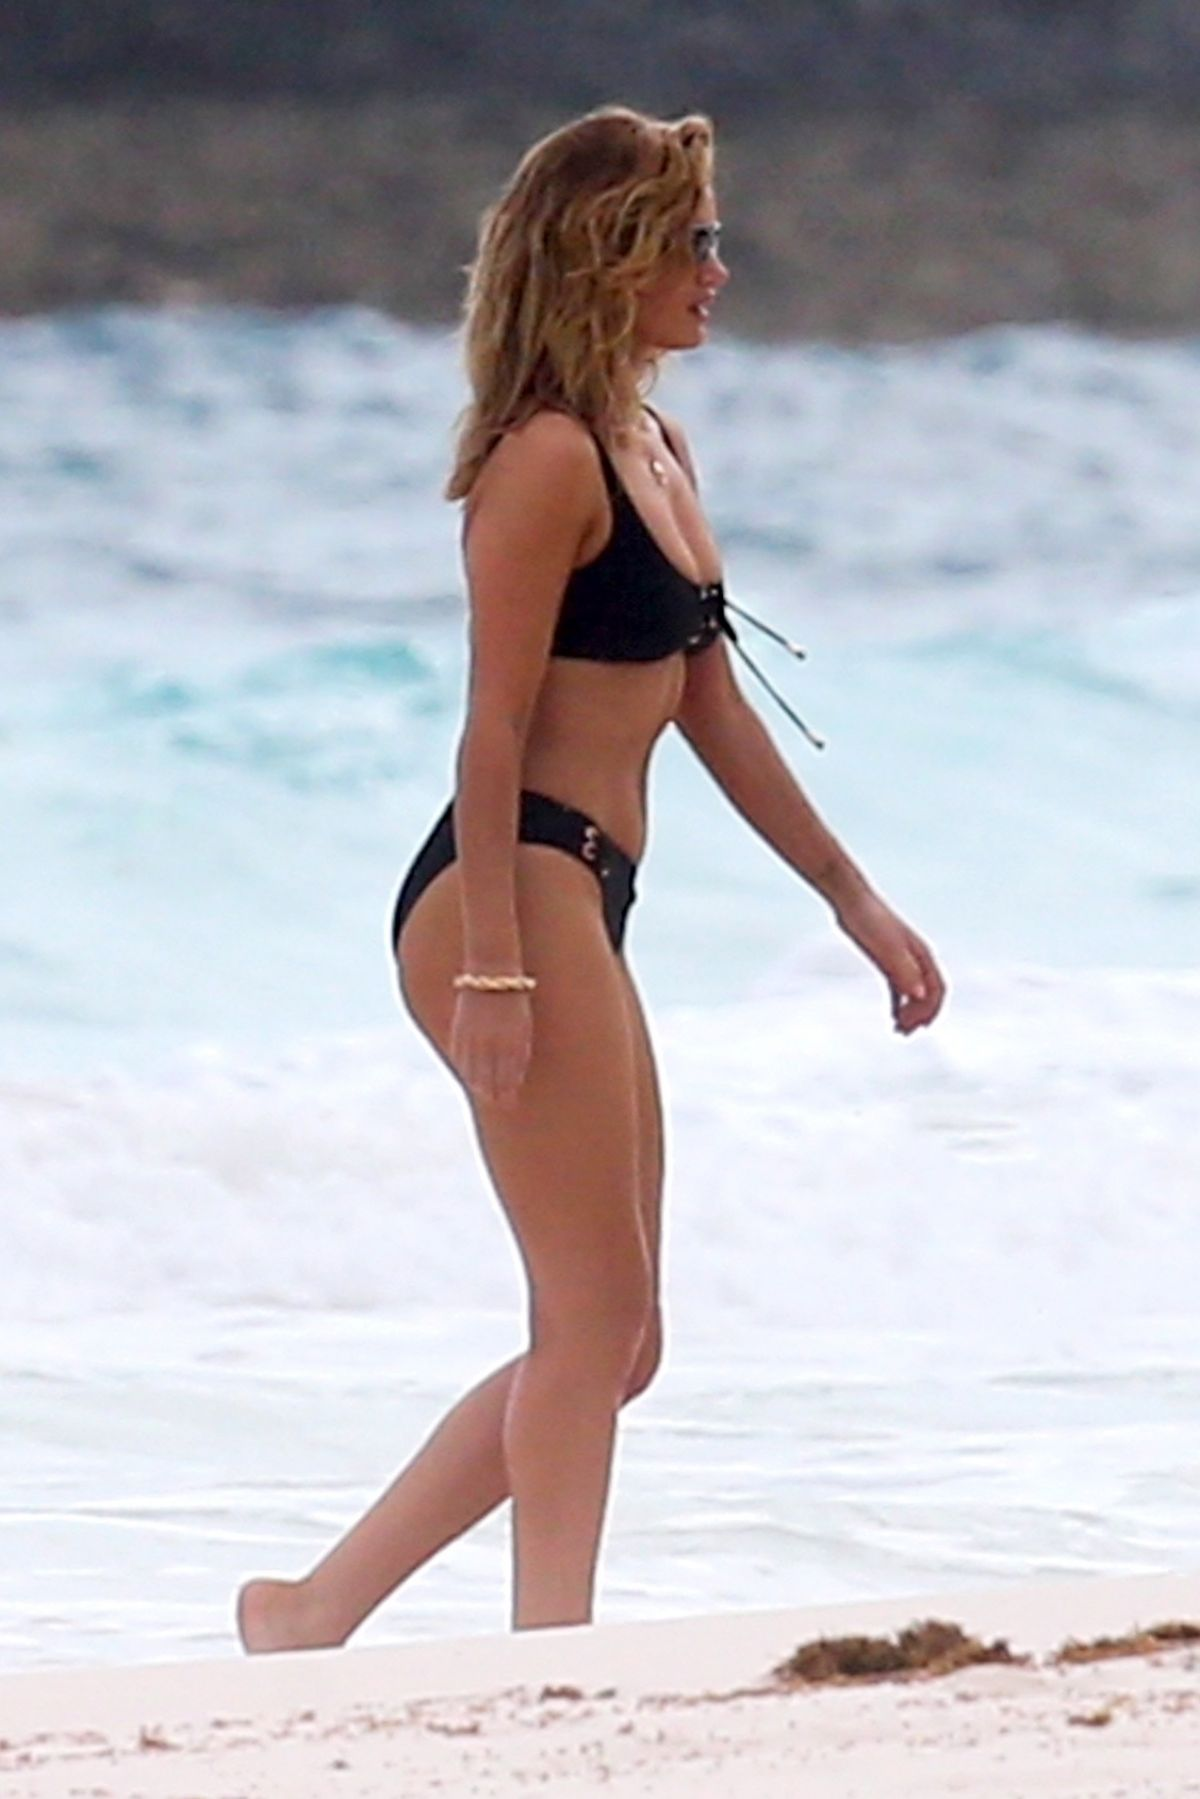 Rosie Huntington Whiteley Bikini Photoshoot at a Beach in the Bahamas Pic 1 of 35